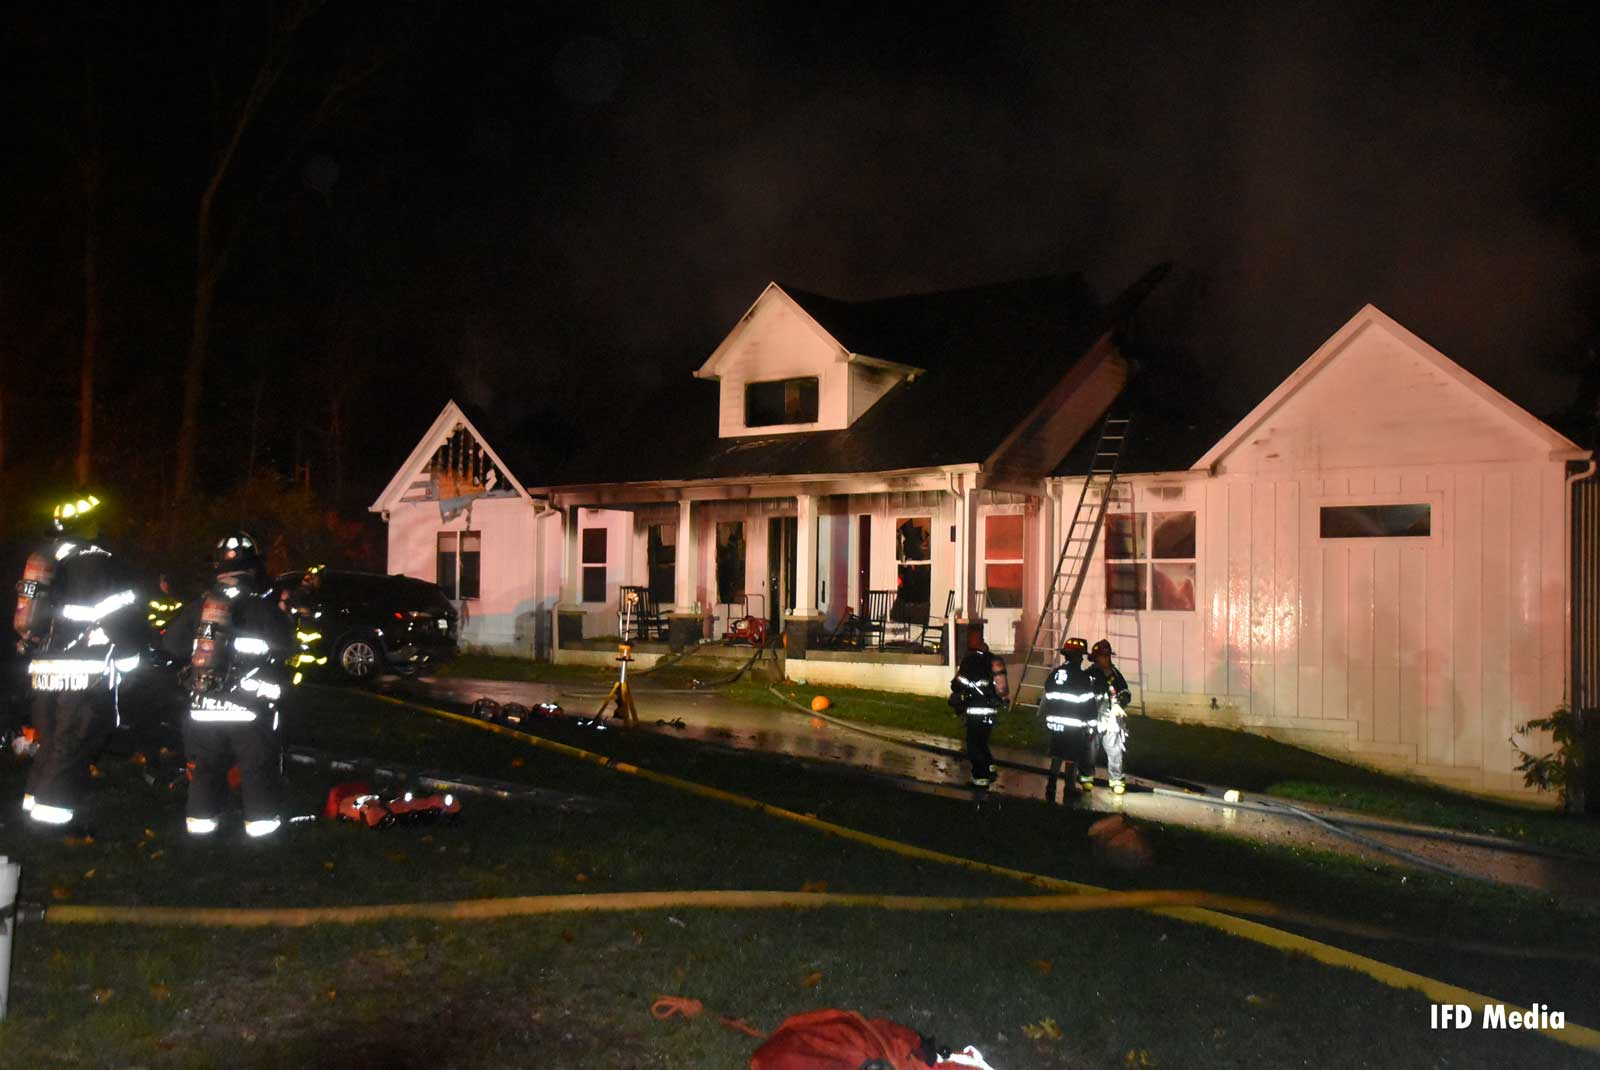 View of the fire scene